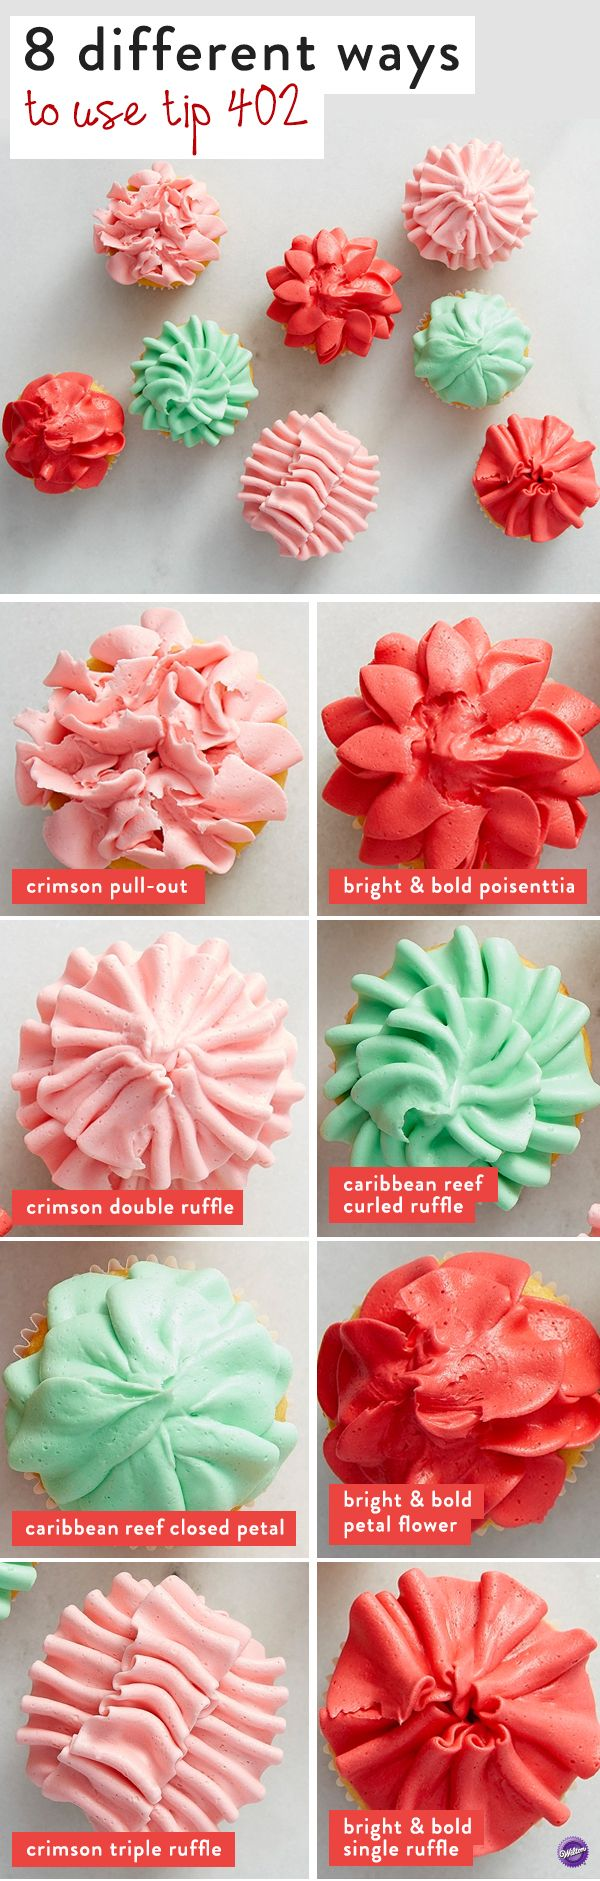 Cake Decorating Techniques Wilton : Best 25+ Wilton tips ideas on Pinterest Cupcake frosting tips, Piping techniques and Wilton ...